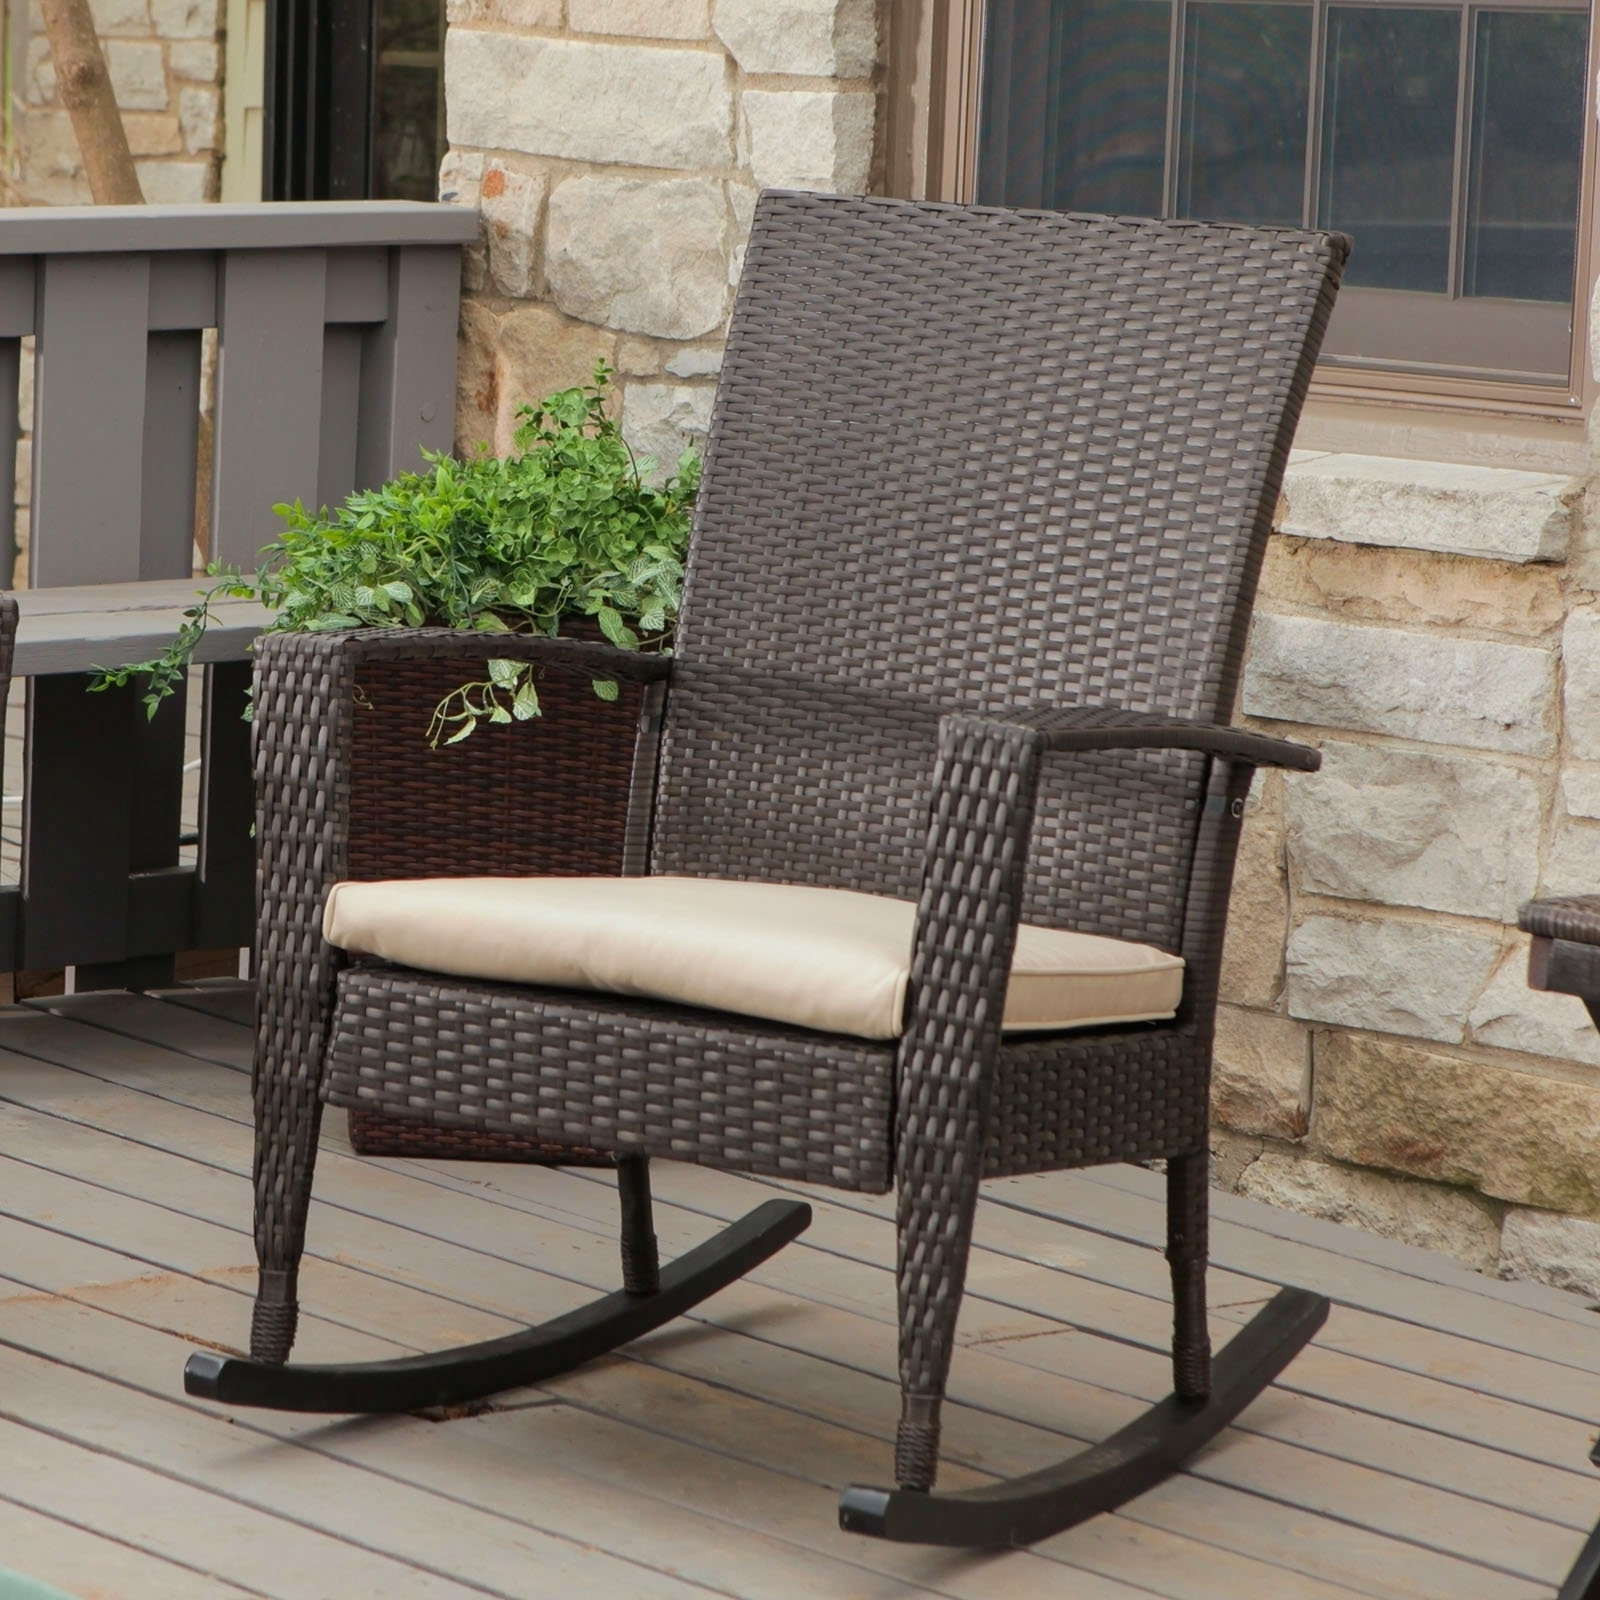 2019 Rocking Chairs For Porch Throughout Patio & Garden : Beautiful Outdoor Rocking Chairs Cracker' Vinyl (View 16 of 20)